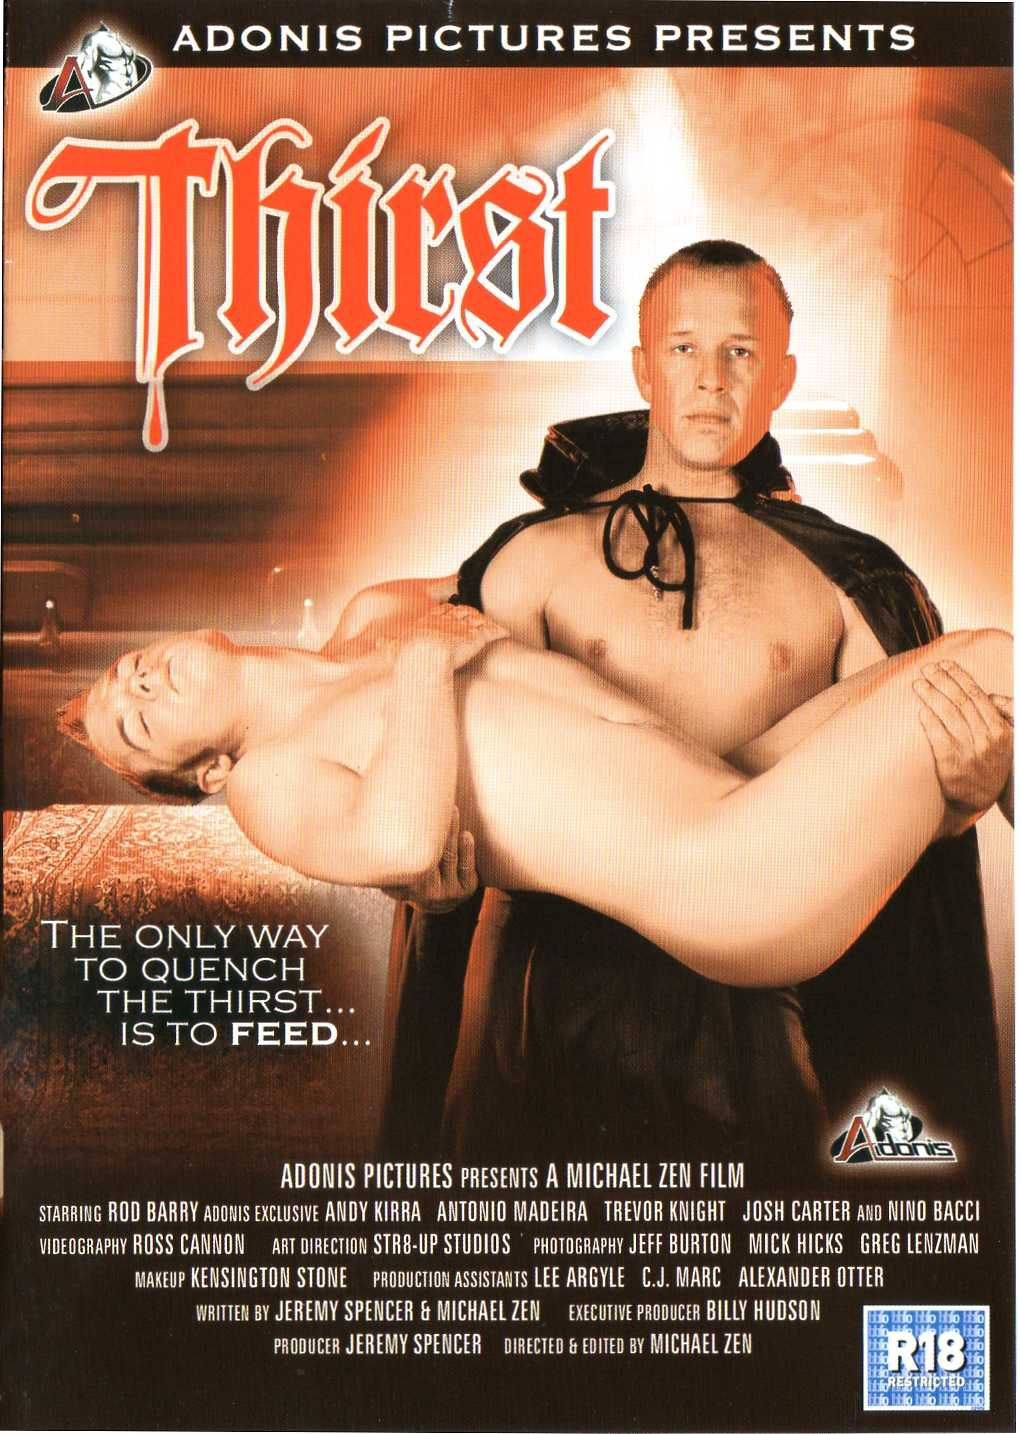 Pornofilms vampires porncraft film